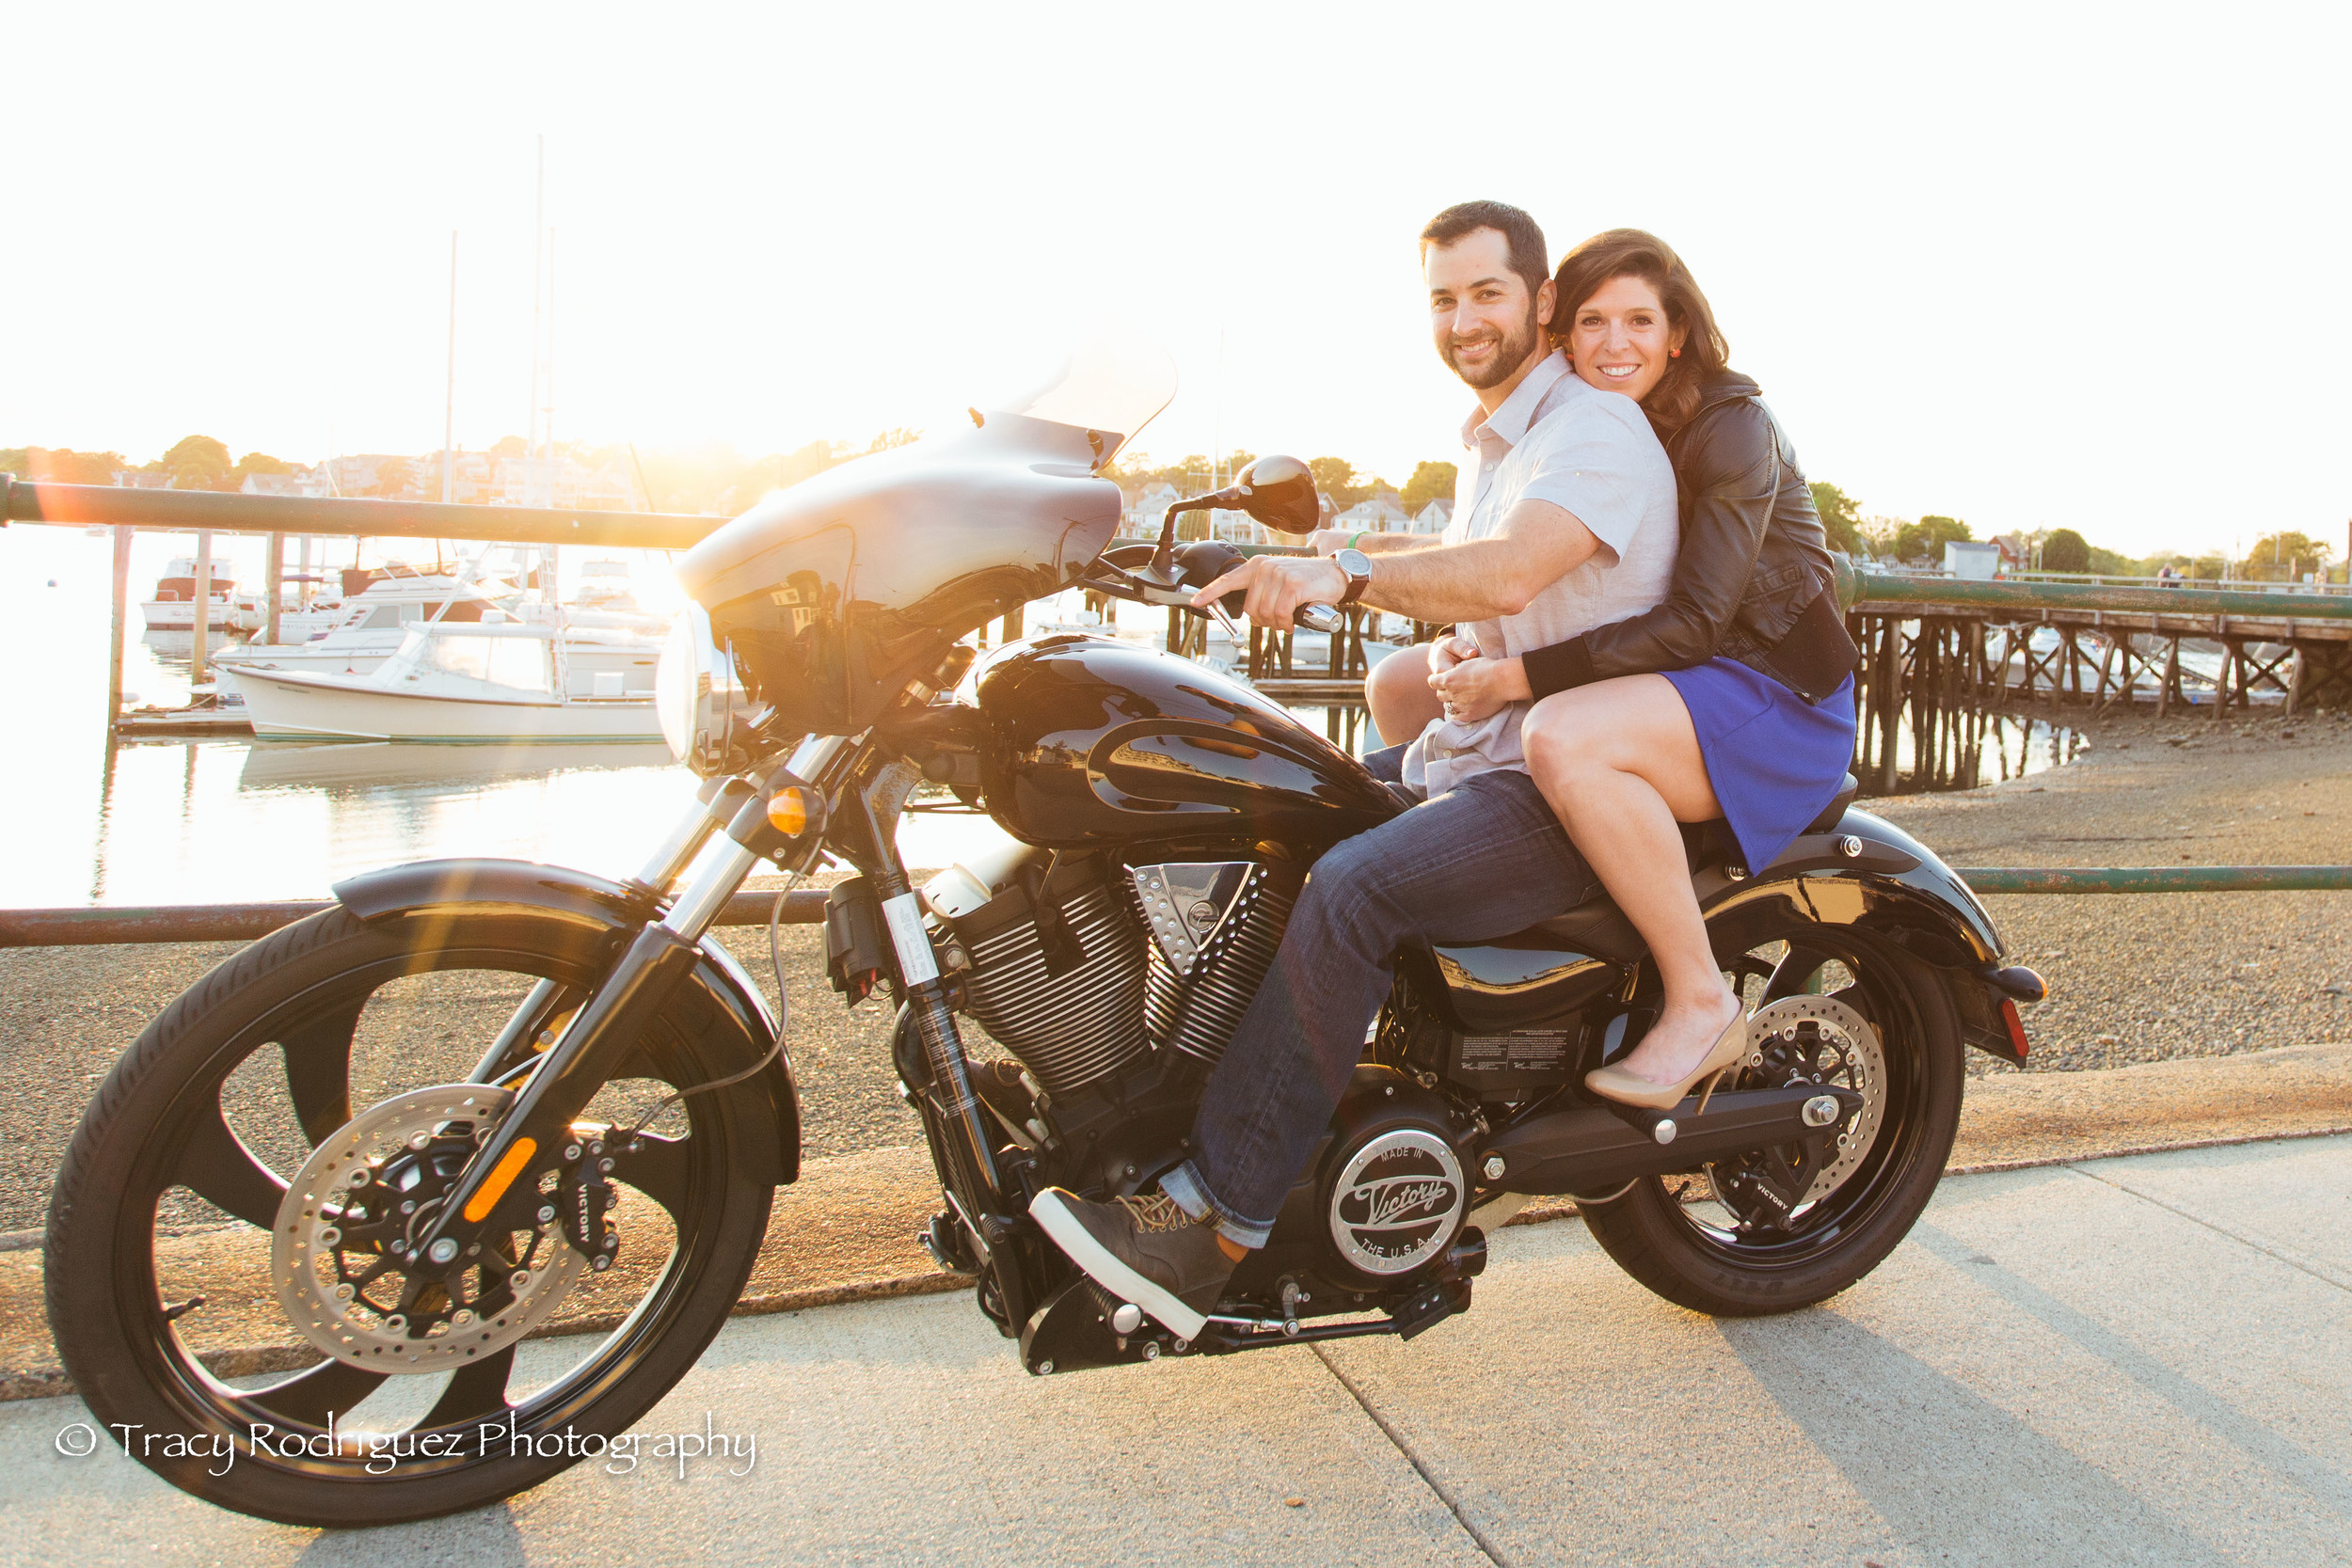 TracyRodriguezPhotography-LowRes-48.jpg